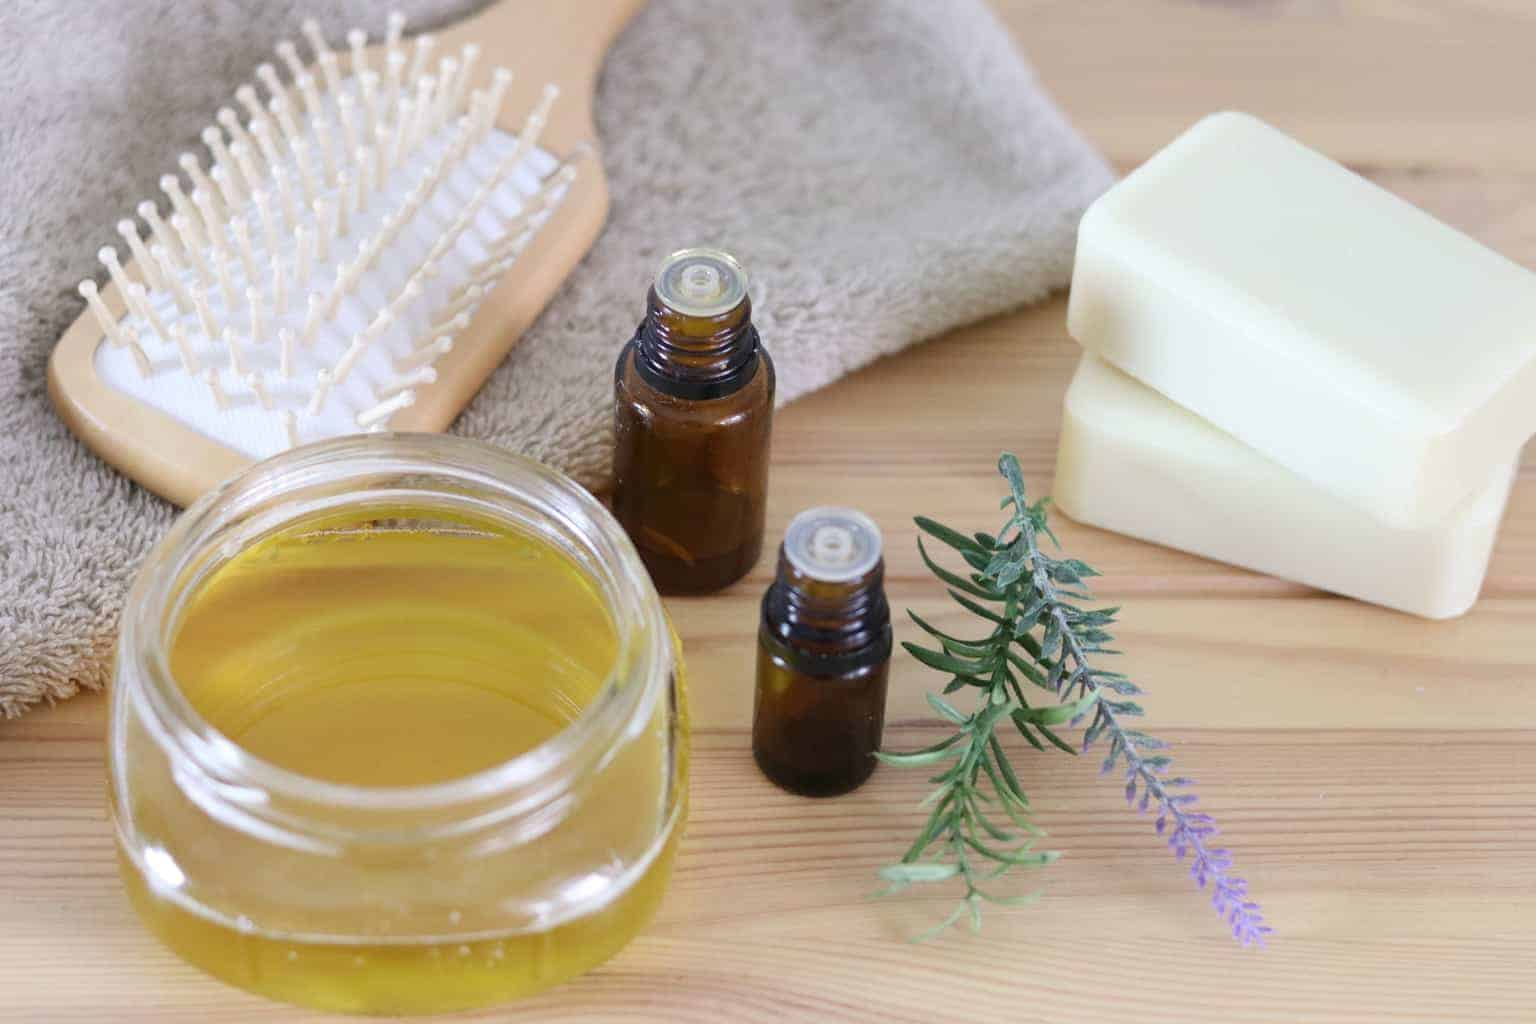 How to make essential oil scented conditioner at home with 5 simple ingredients.